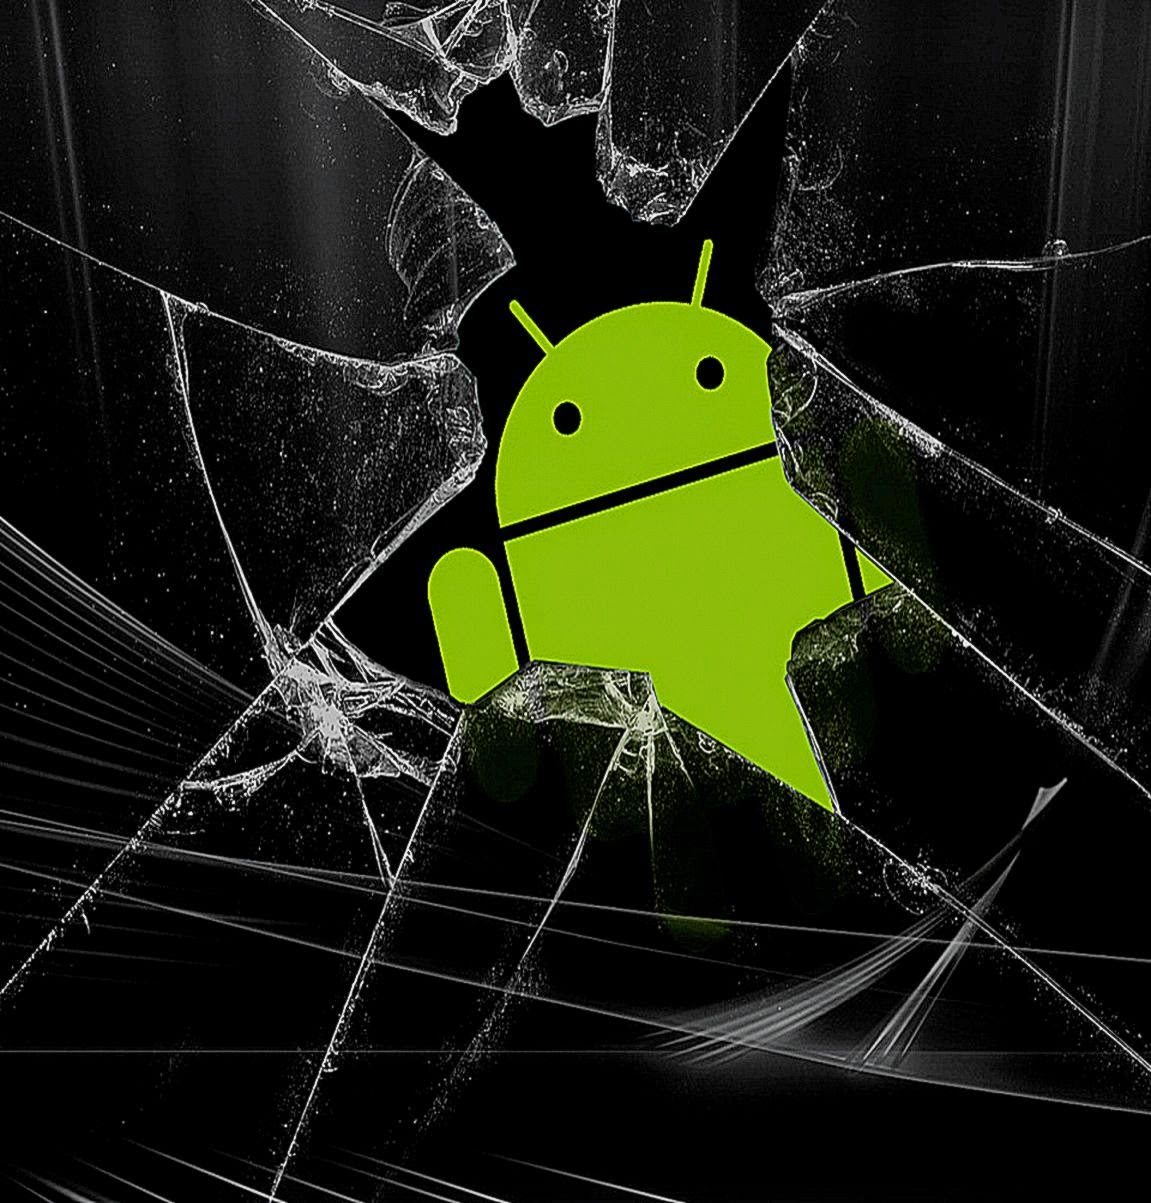 Glass Wallpaper: All About HD Wallpaper: Android Wallpapers Hd Broken Glass